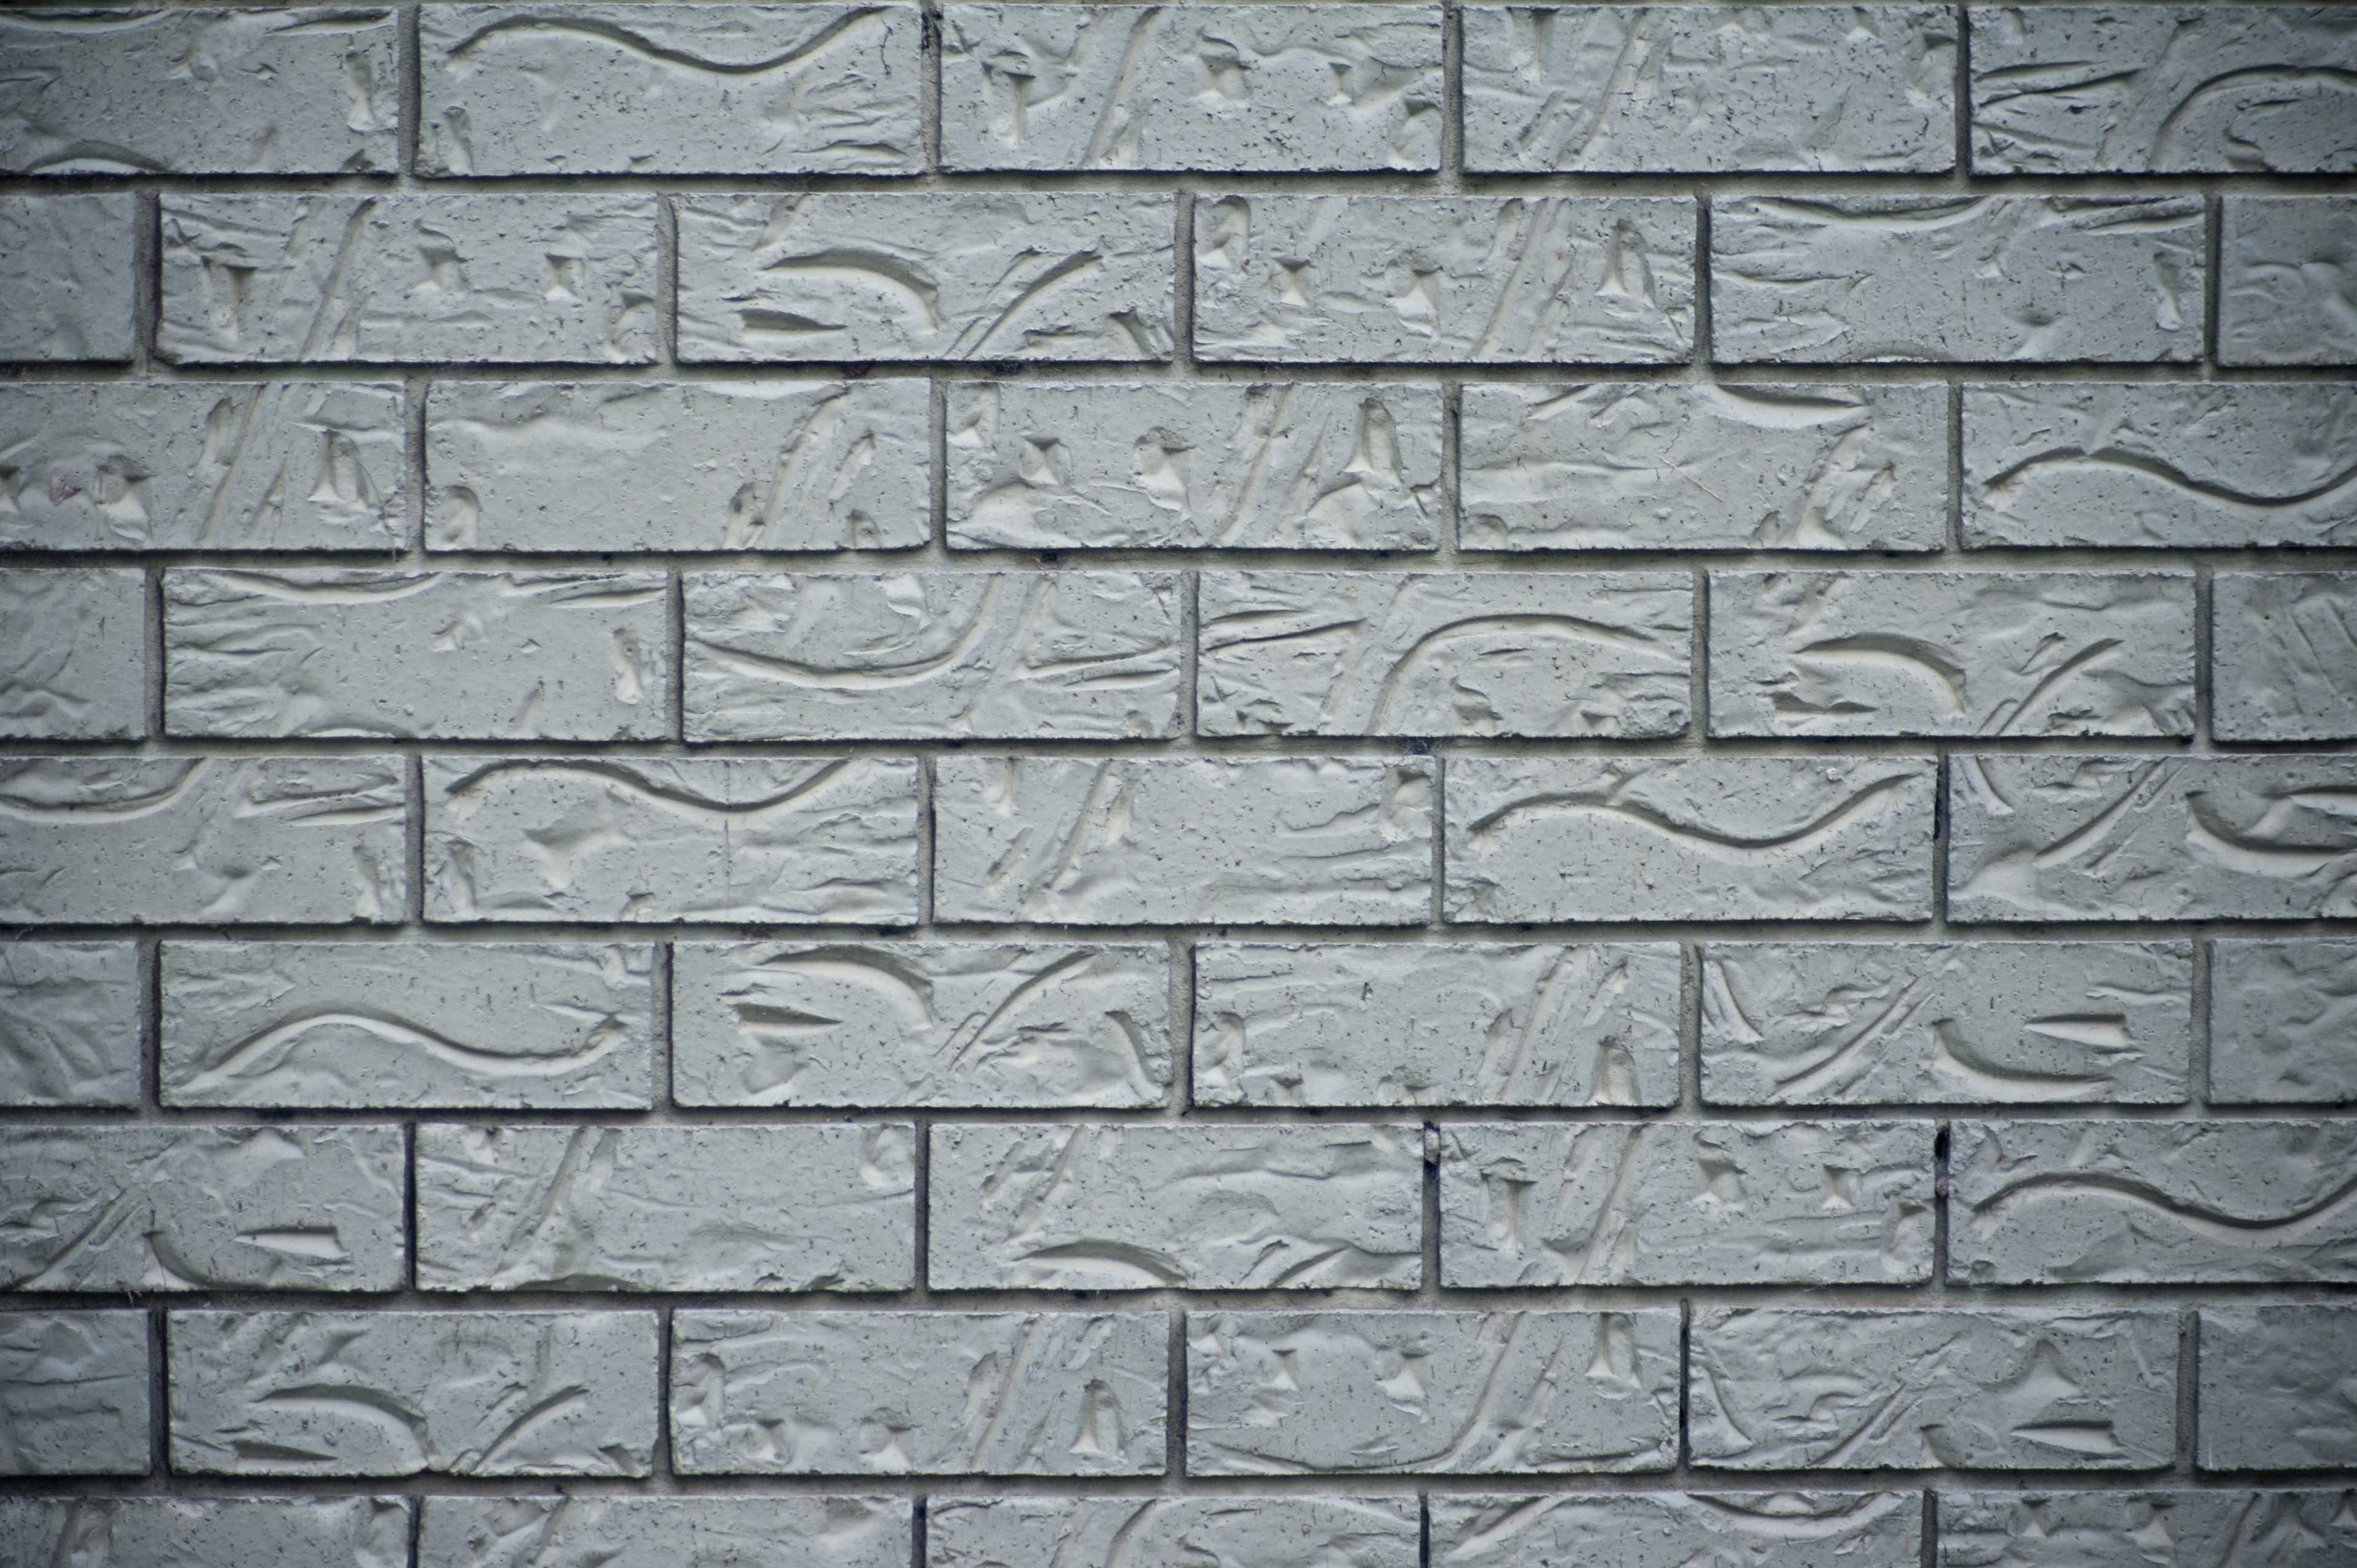 Decorative Grey Brick Background Of Incised And Patterned Grey Bricks In A  Neat Wall Construction,